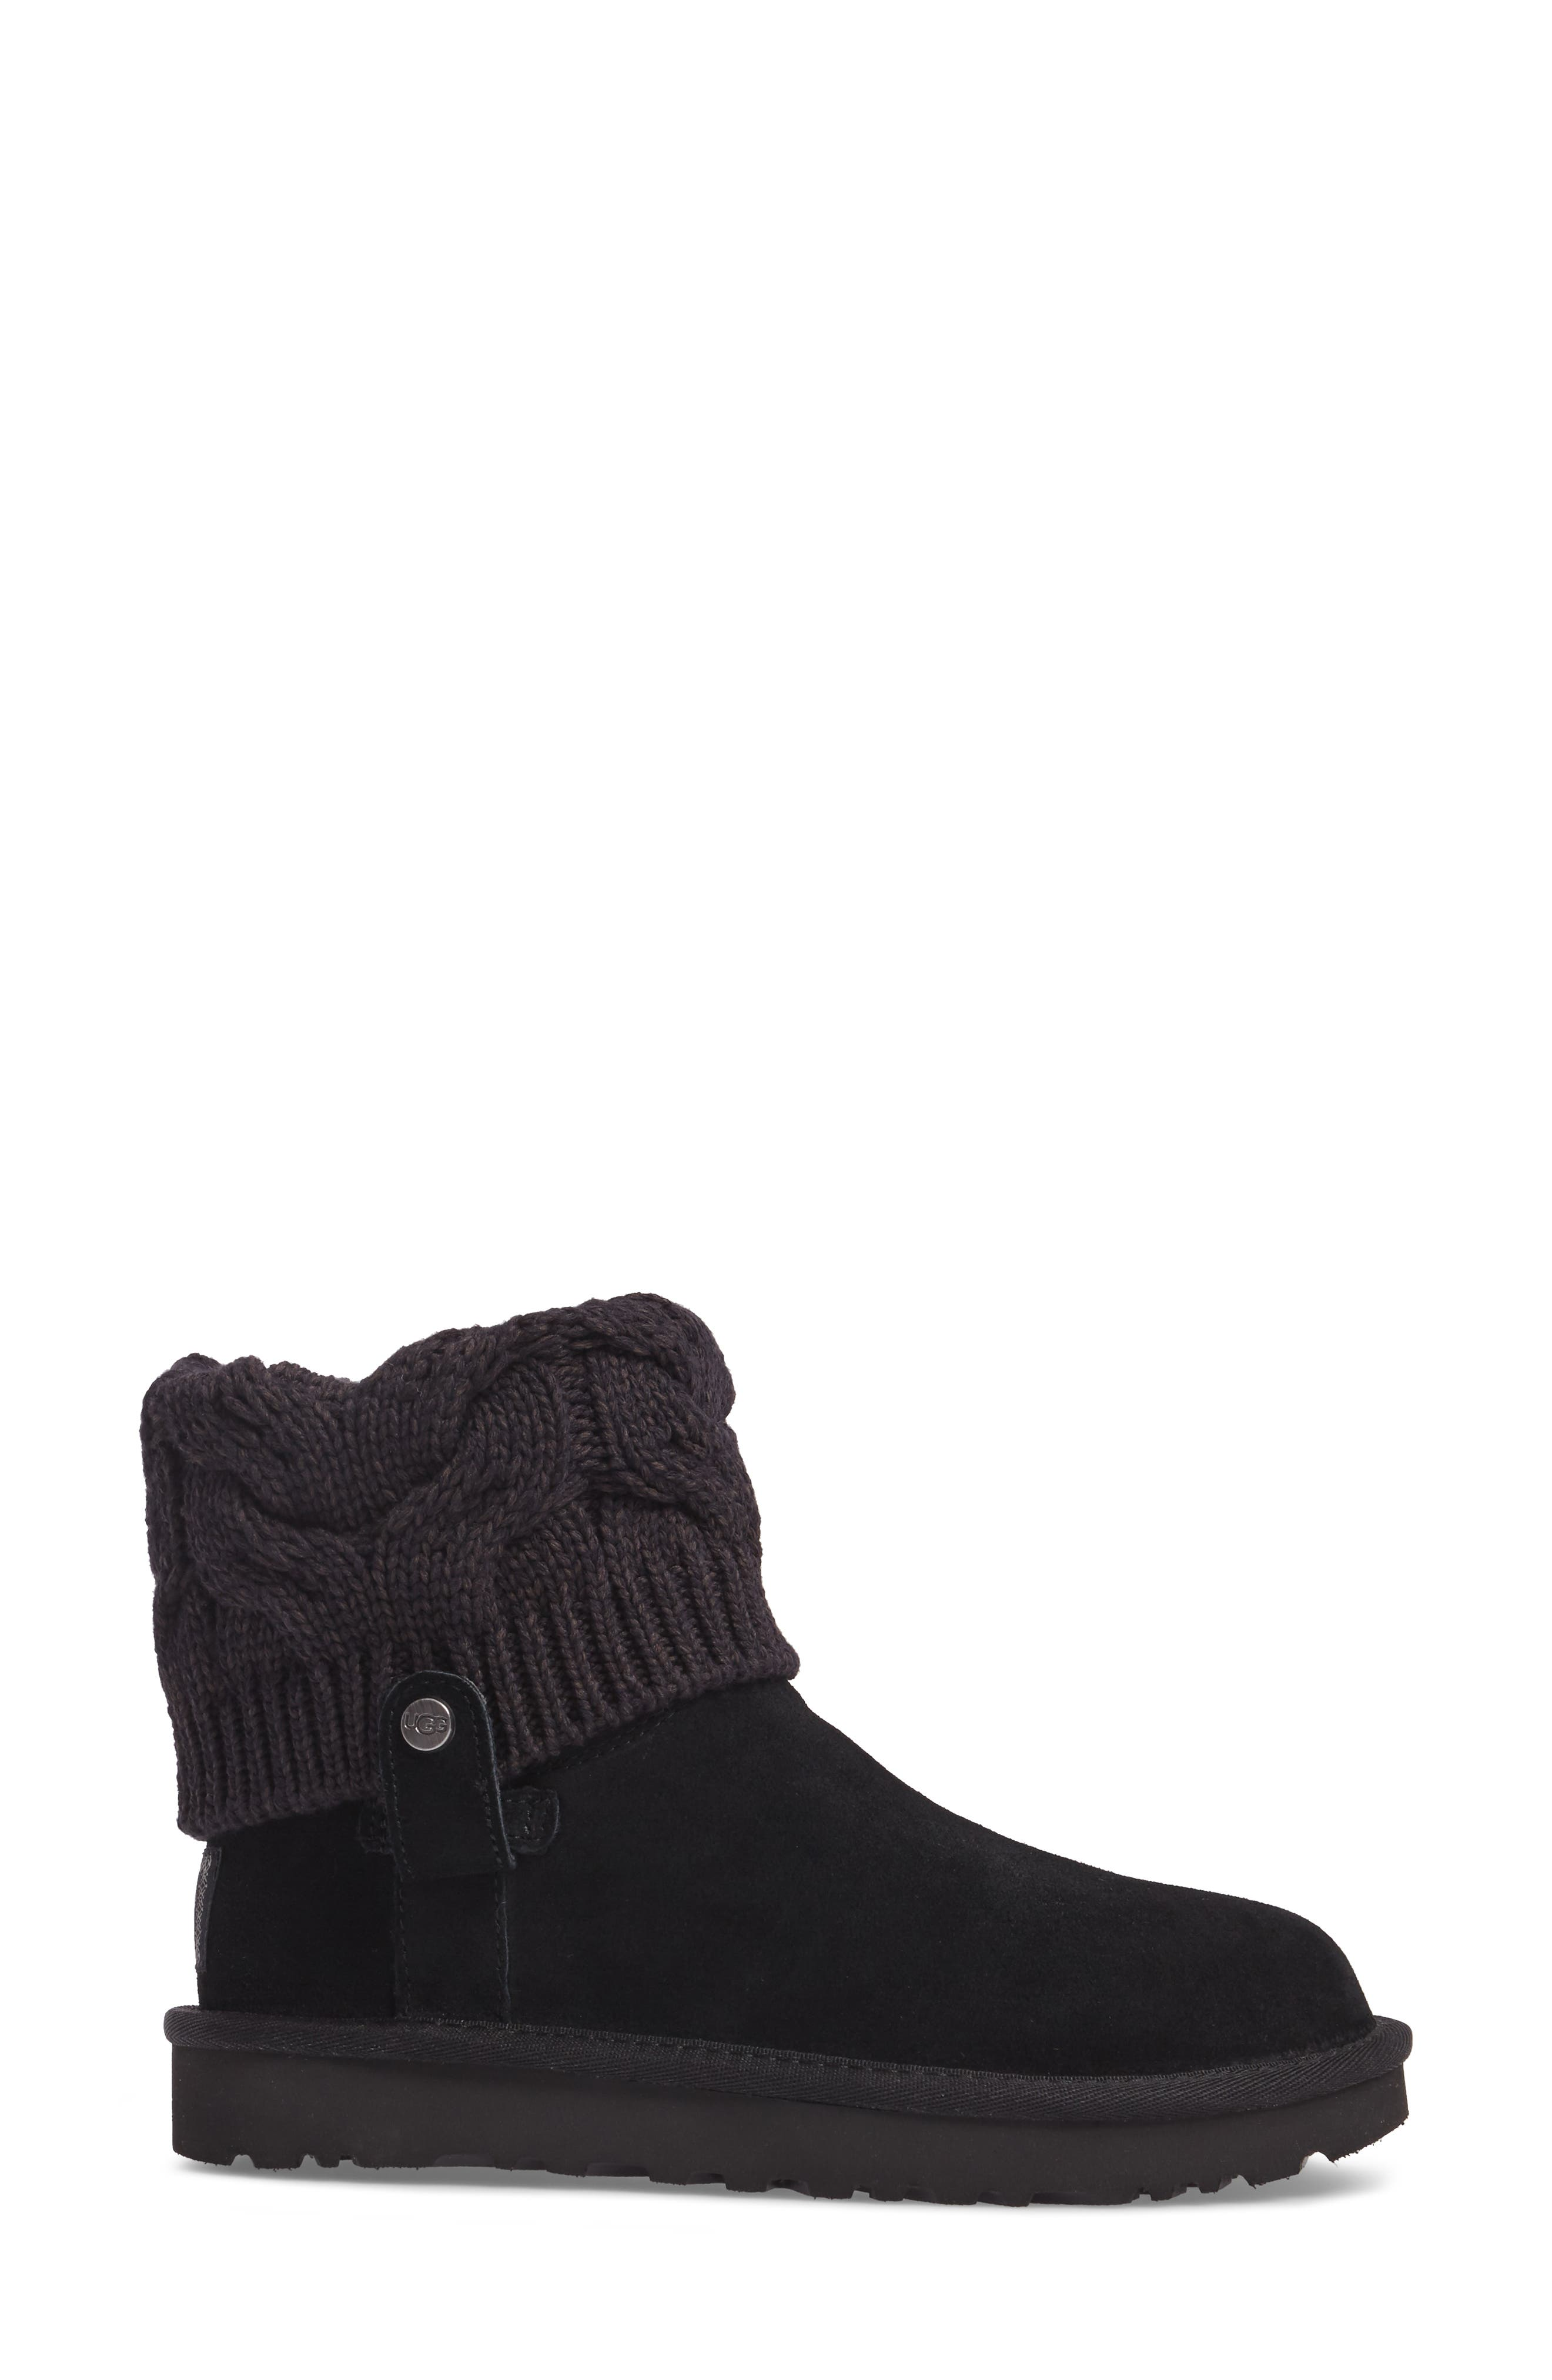 Saela Knit Cuff Boot,                             Alternate thumbnail 3, color,                             Black Suede